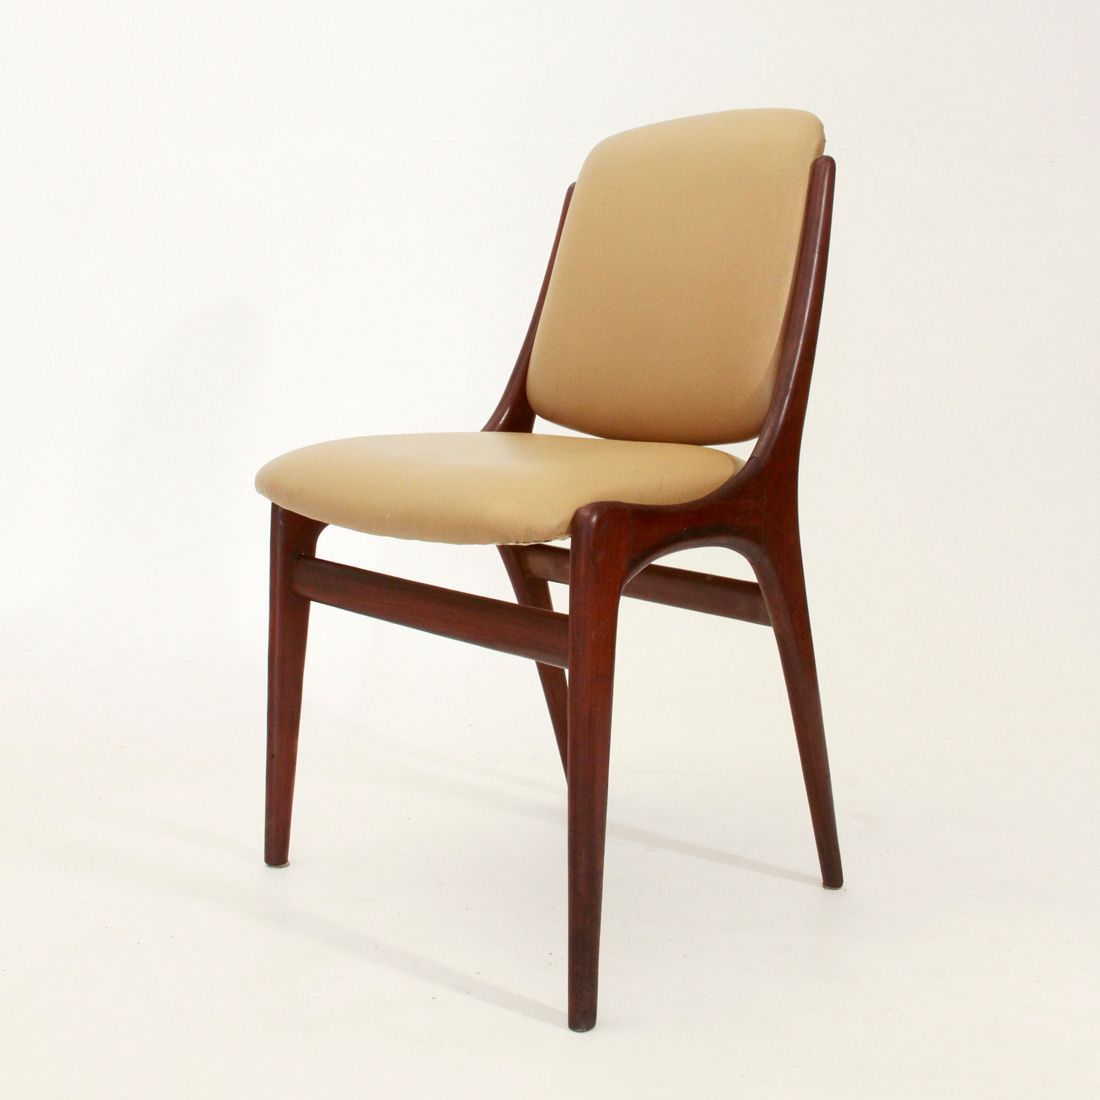 Mid Century Chairs For Sale: Italian Mid-Century Dining Chairs, 1960s, Set Of 4 For